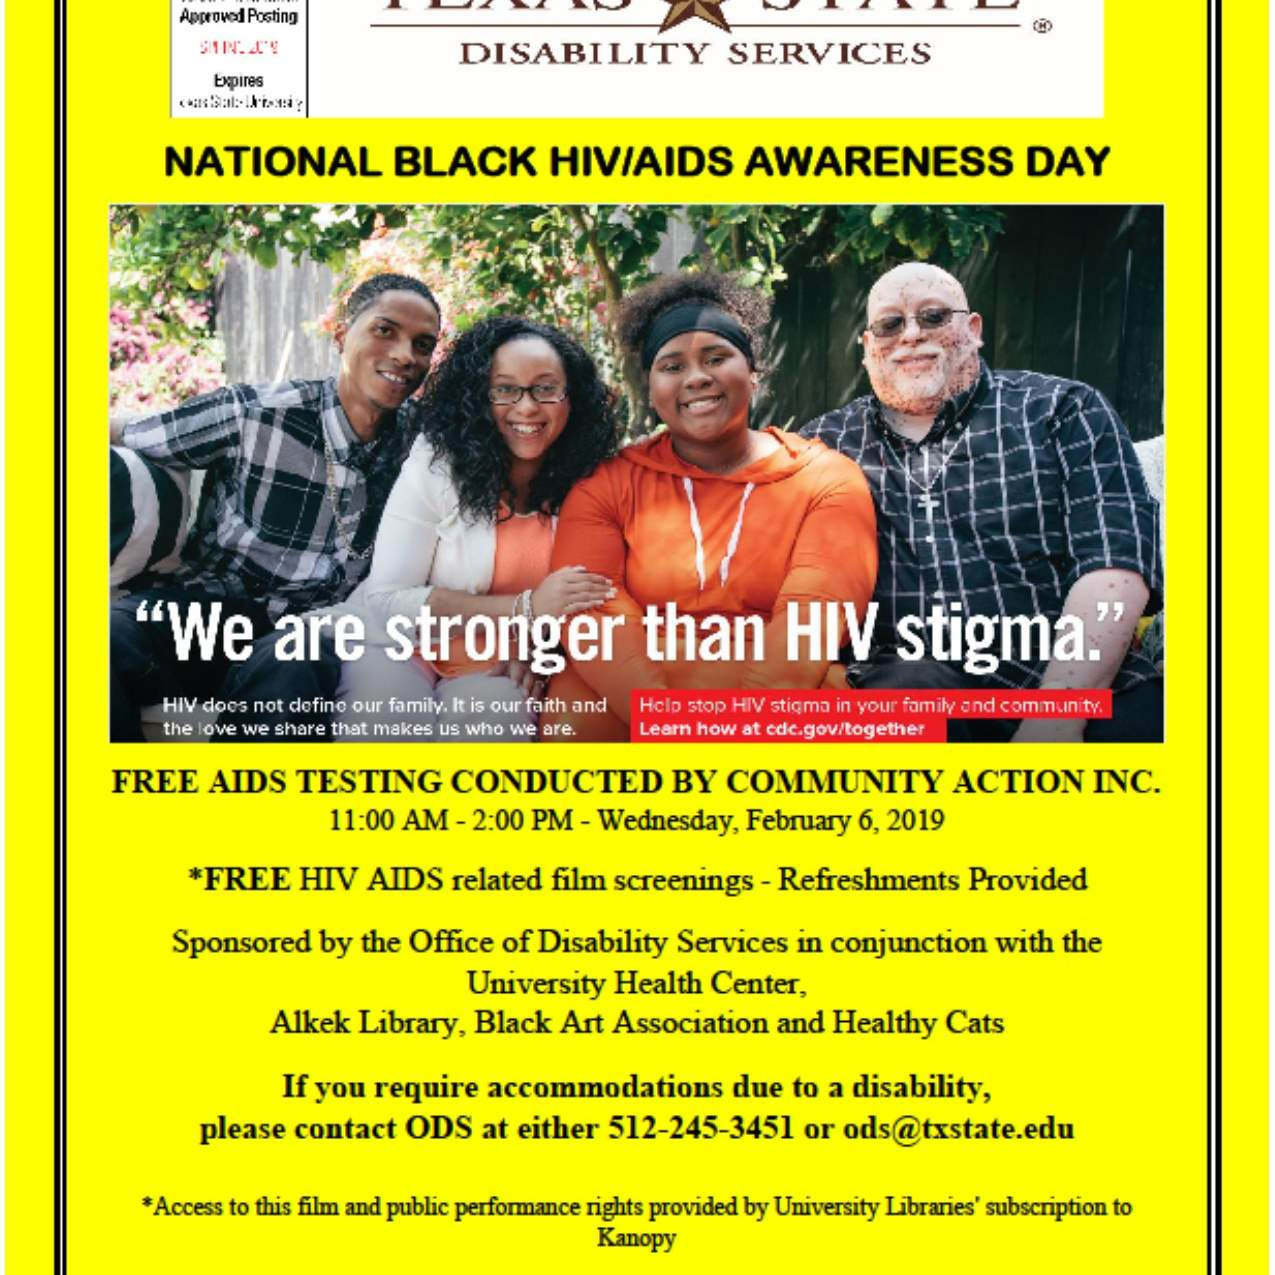 Office of Disability Services' National Black HIV/AIDS Awareness Day Flyer